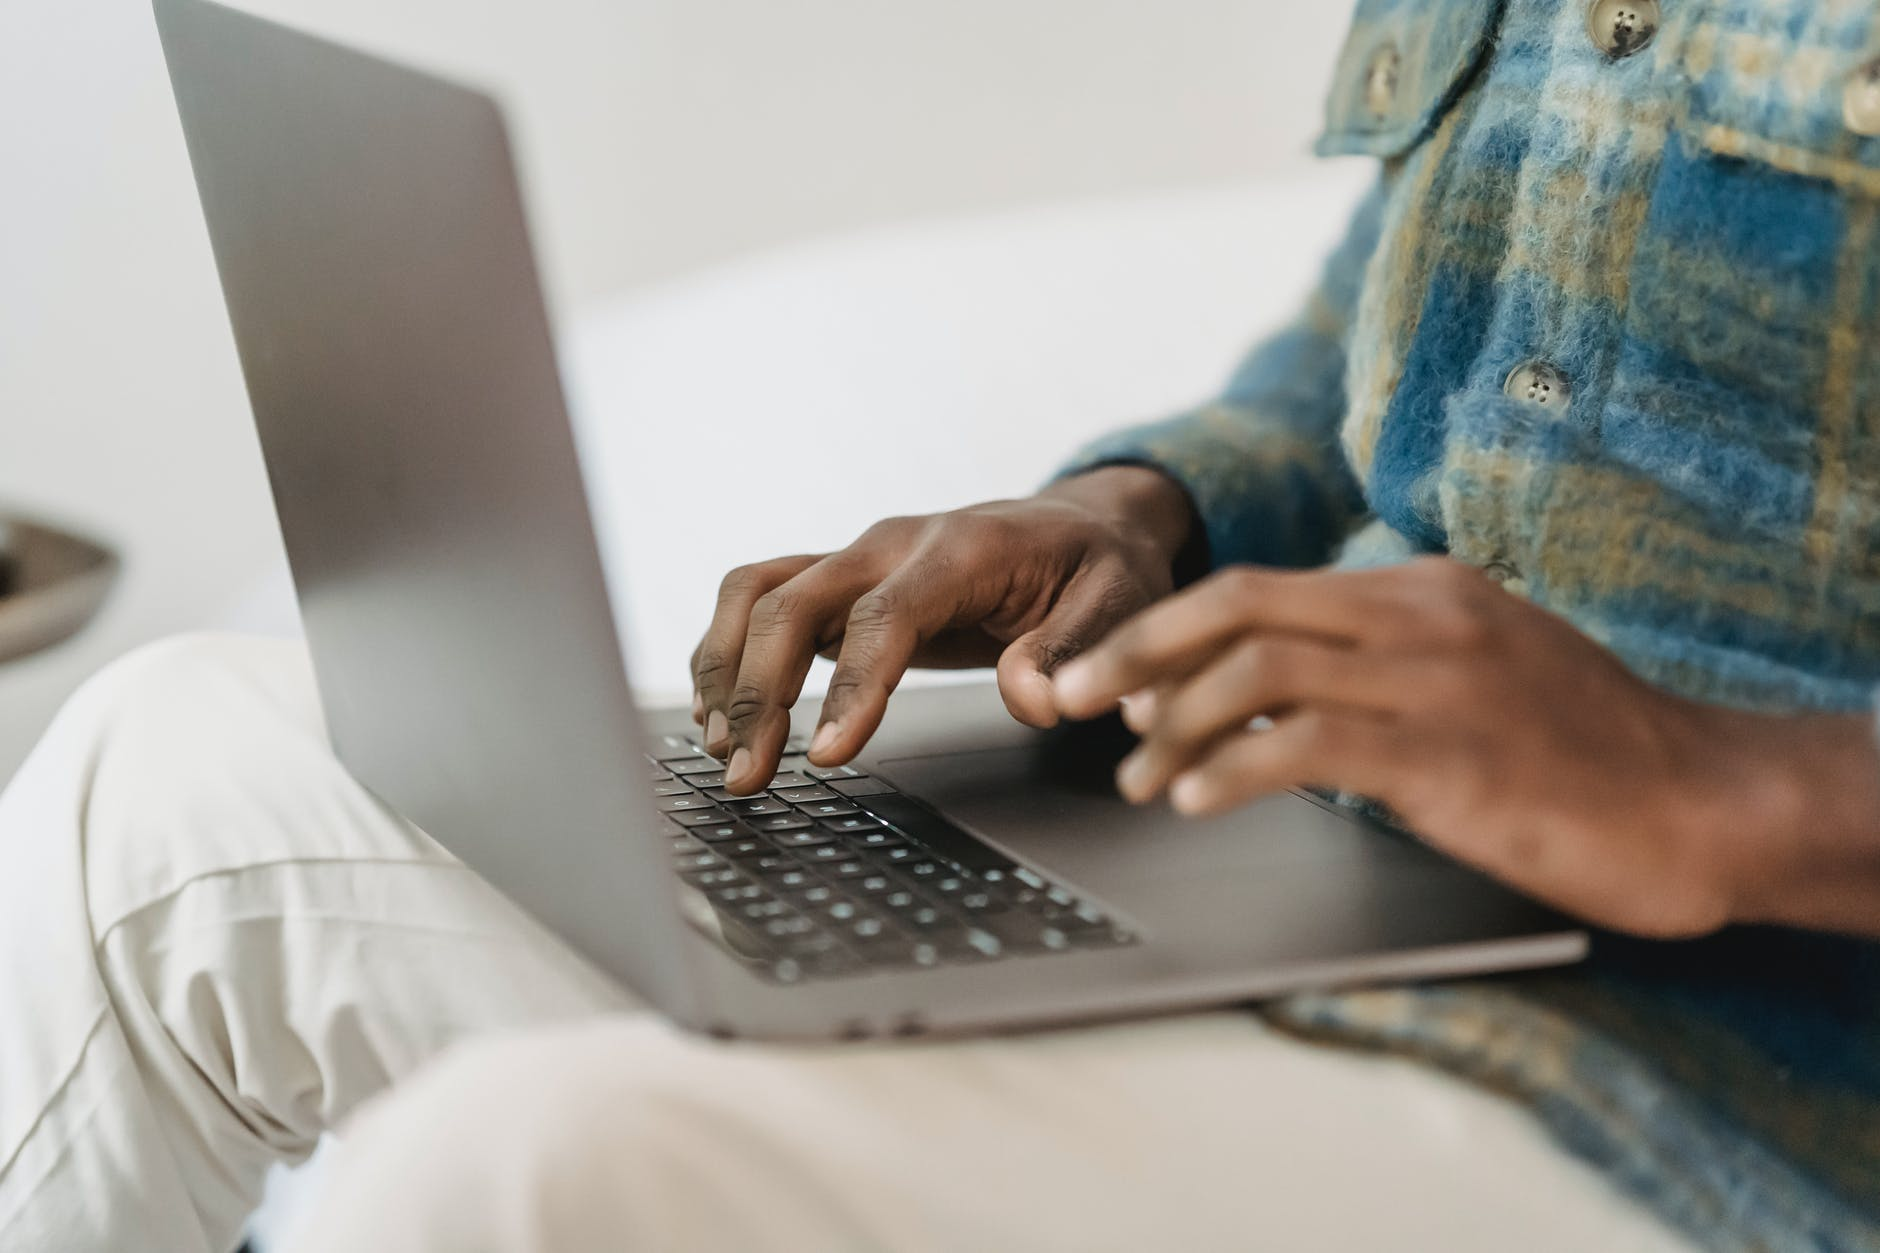 Man uses laptop on his knee, his face is not in the picture and the focus is on the laptop